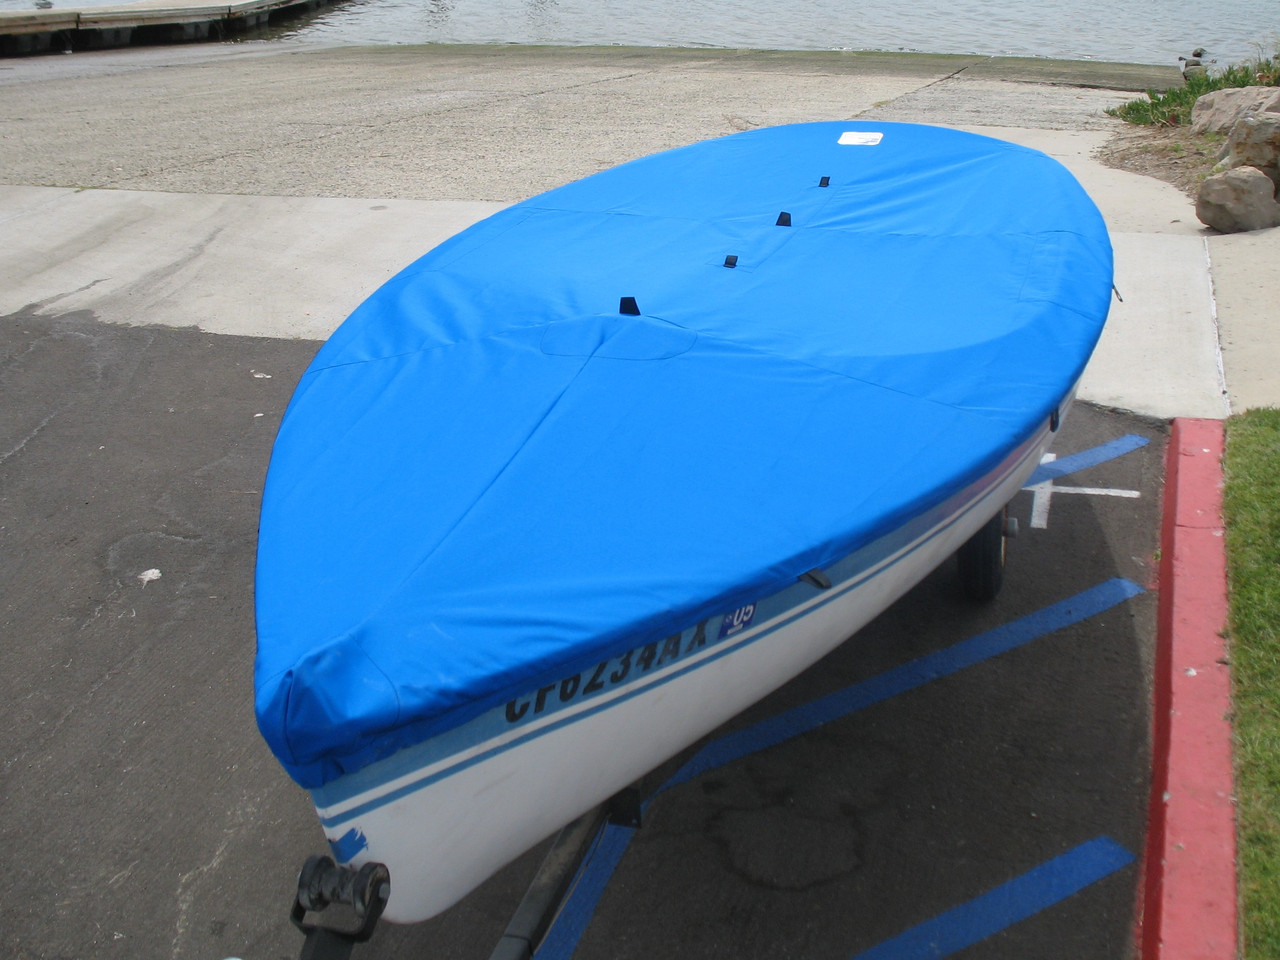 Catalina Top Cover by SLO Sail and Canvas